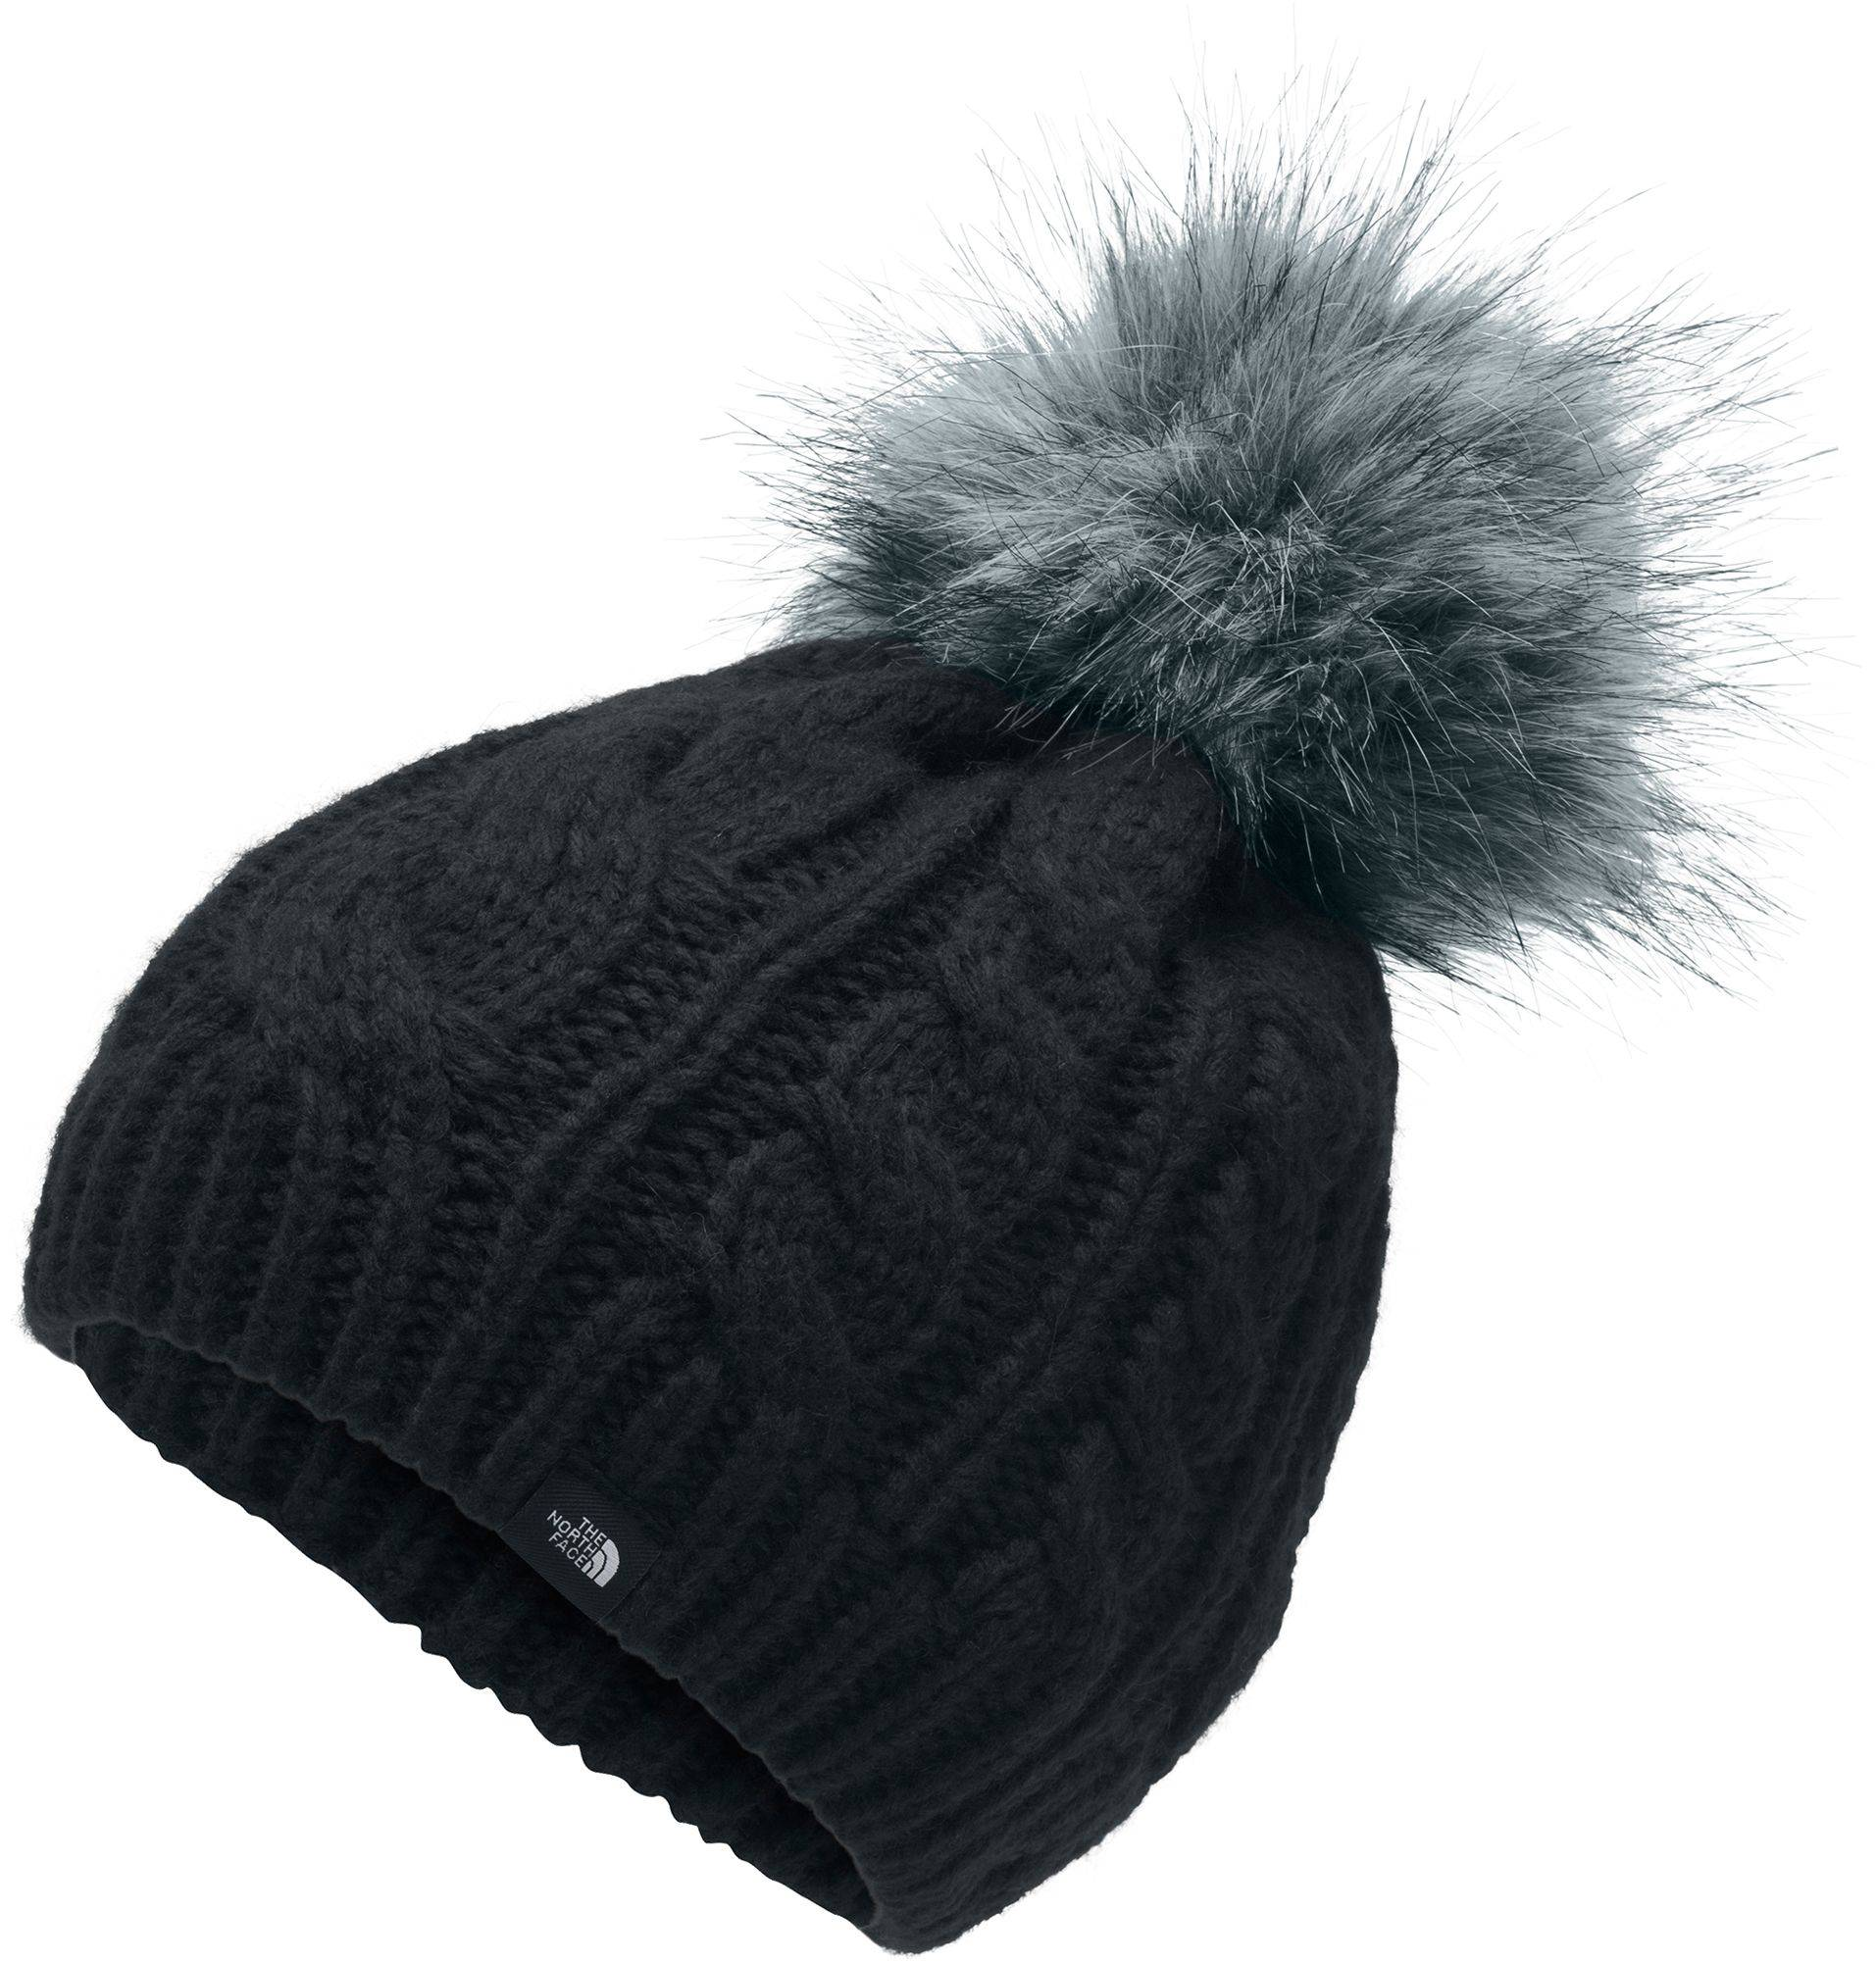 The North Face Youth Oh-Mega Beanie, Kids, Black